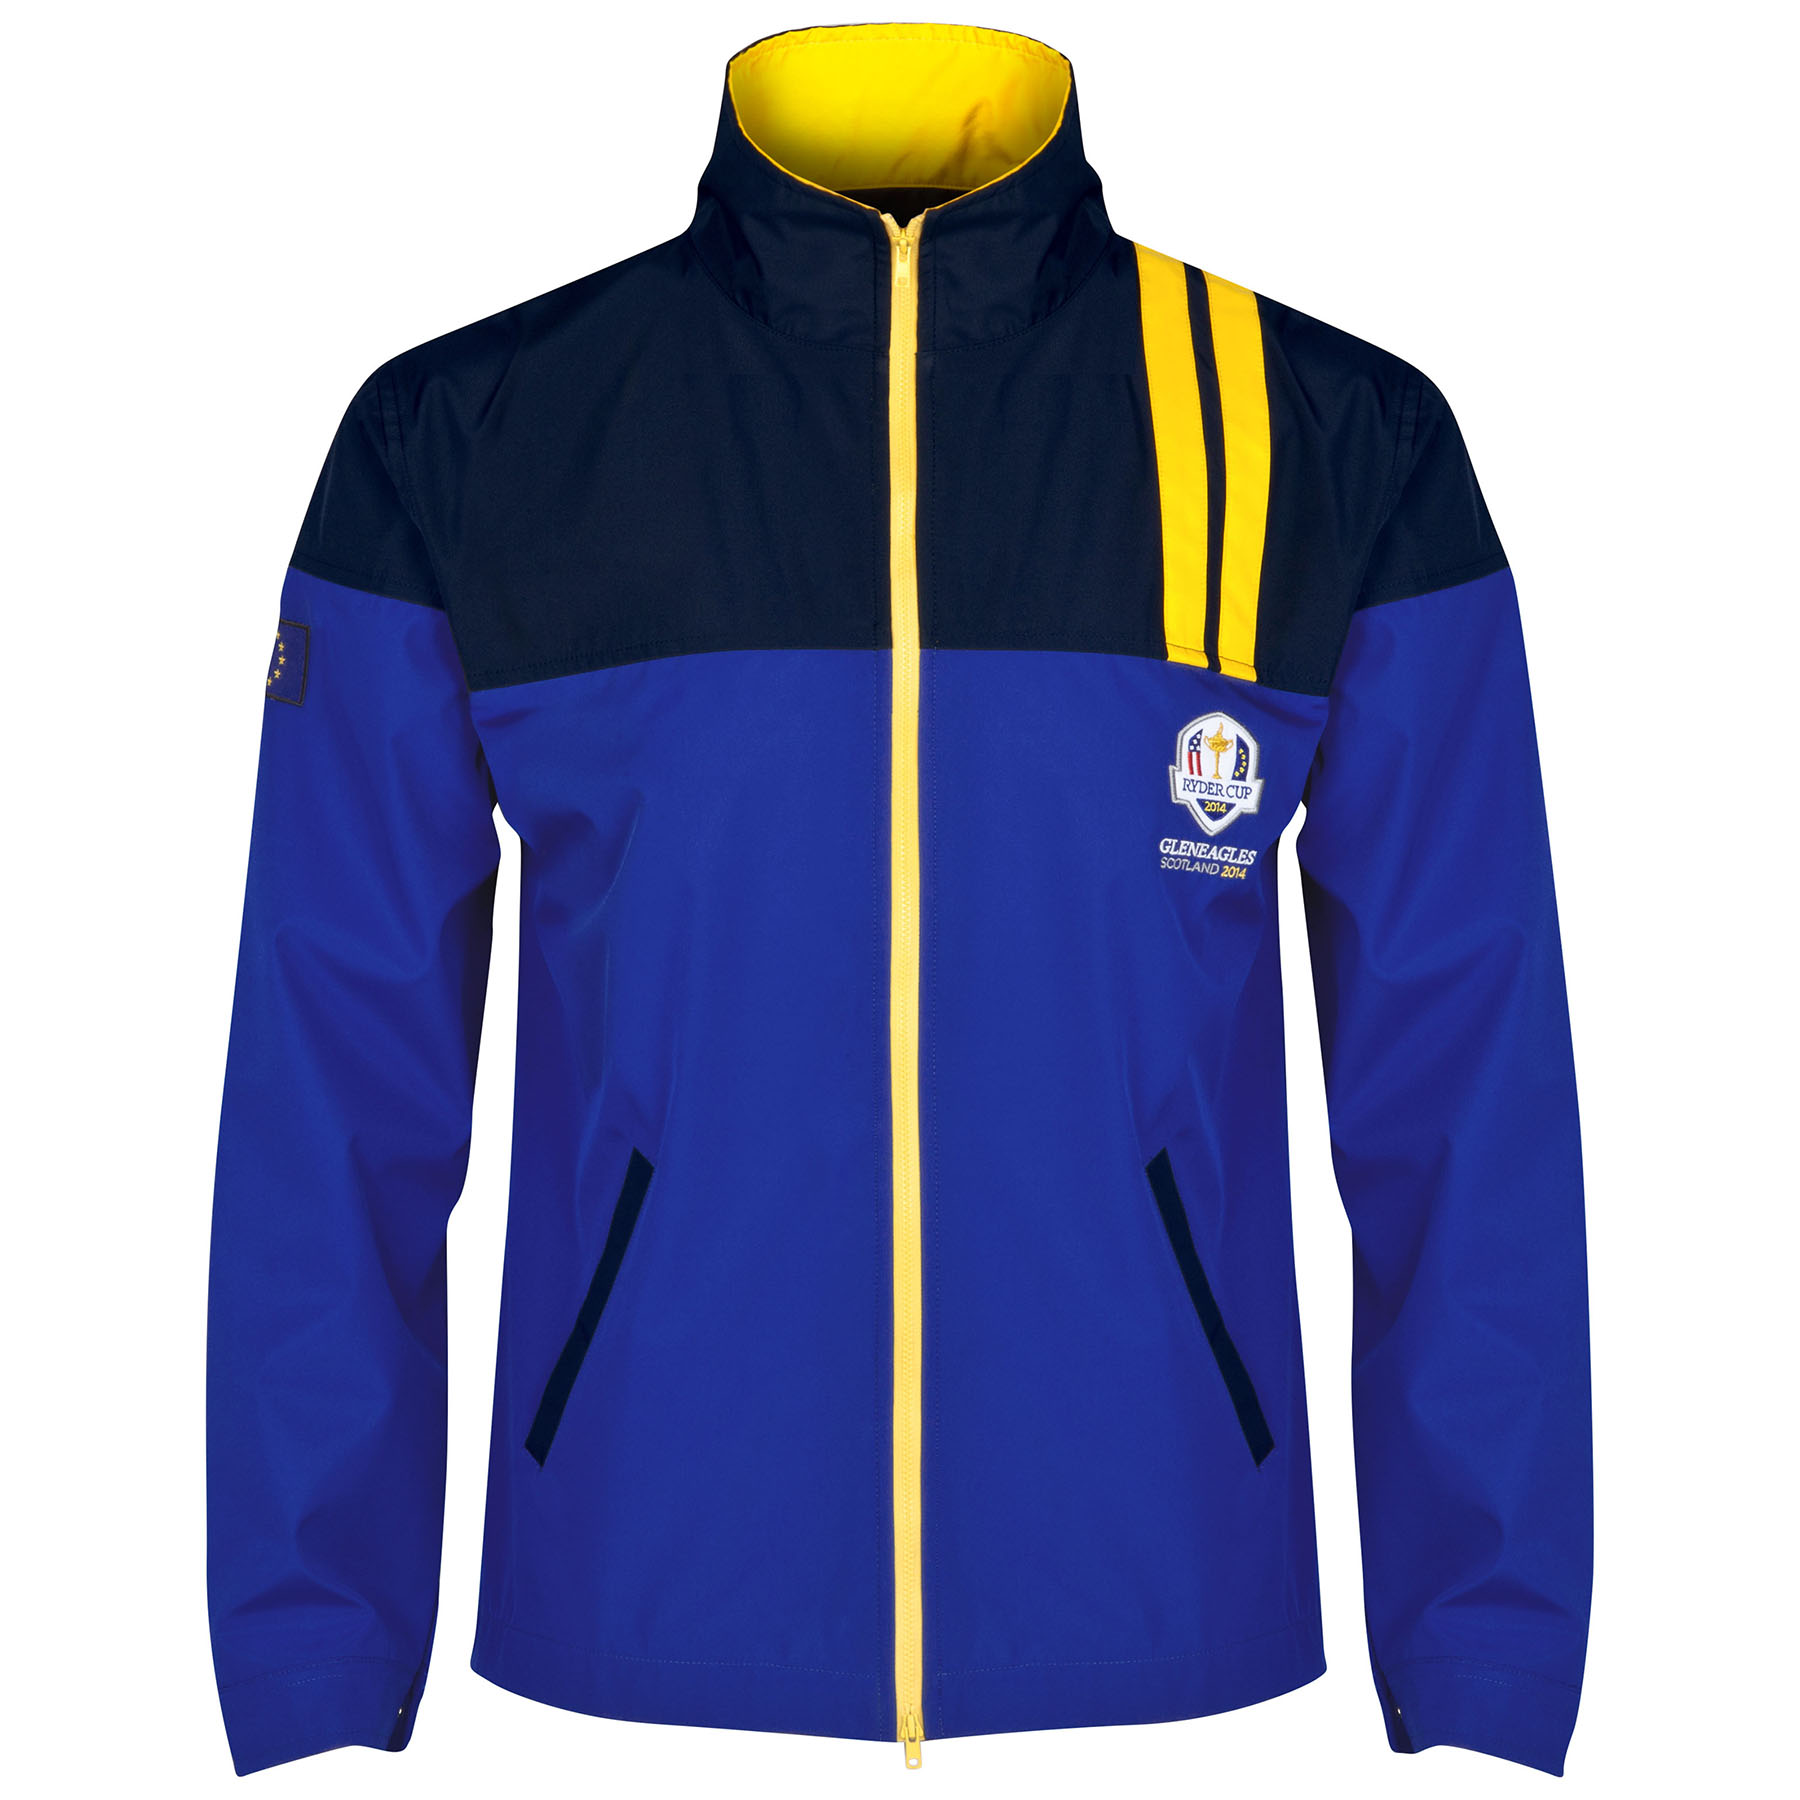 The 2014 Ryder Cup Fan Range Soft Shell Jacket